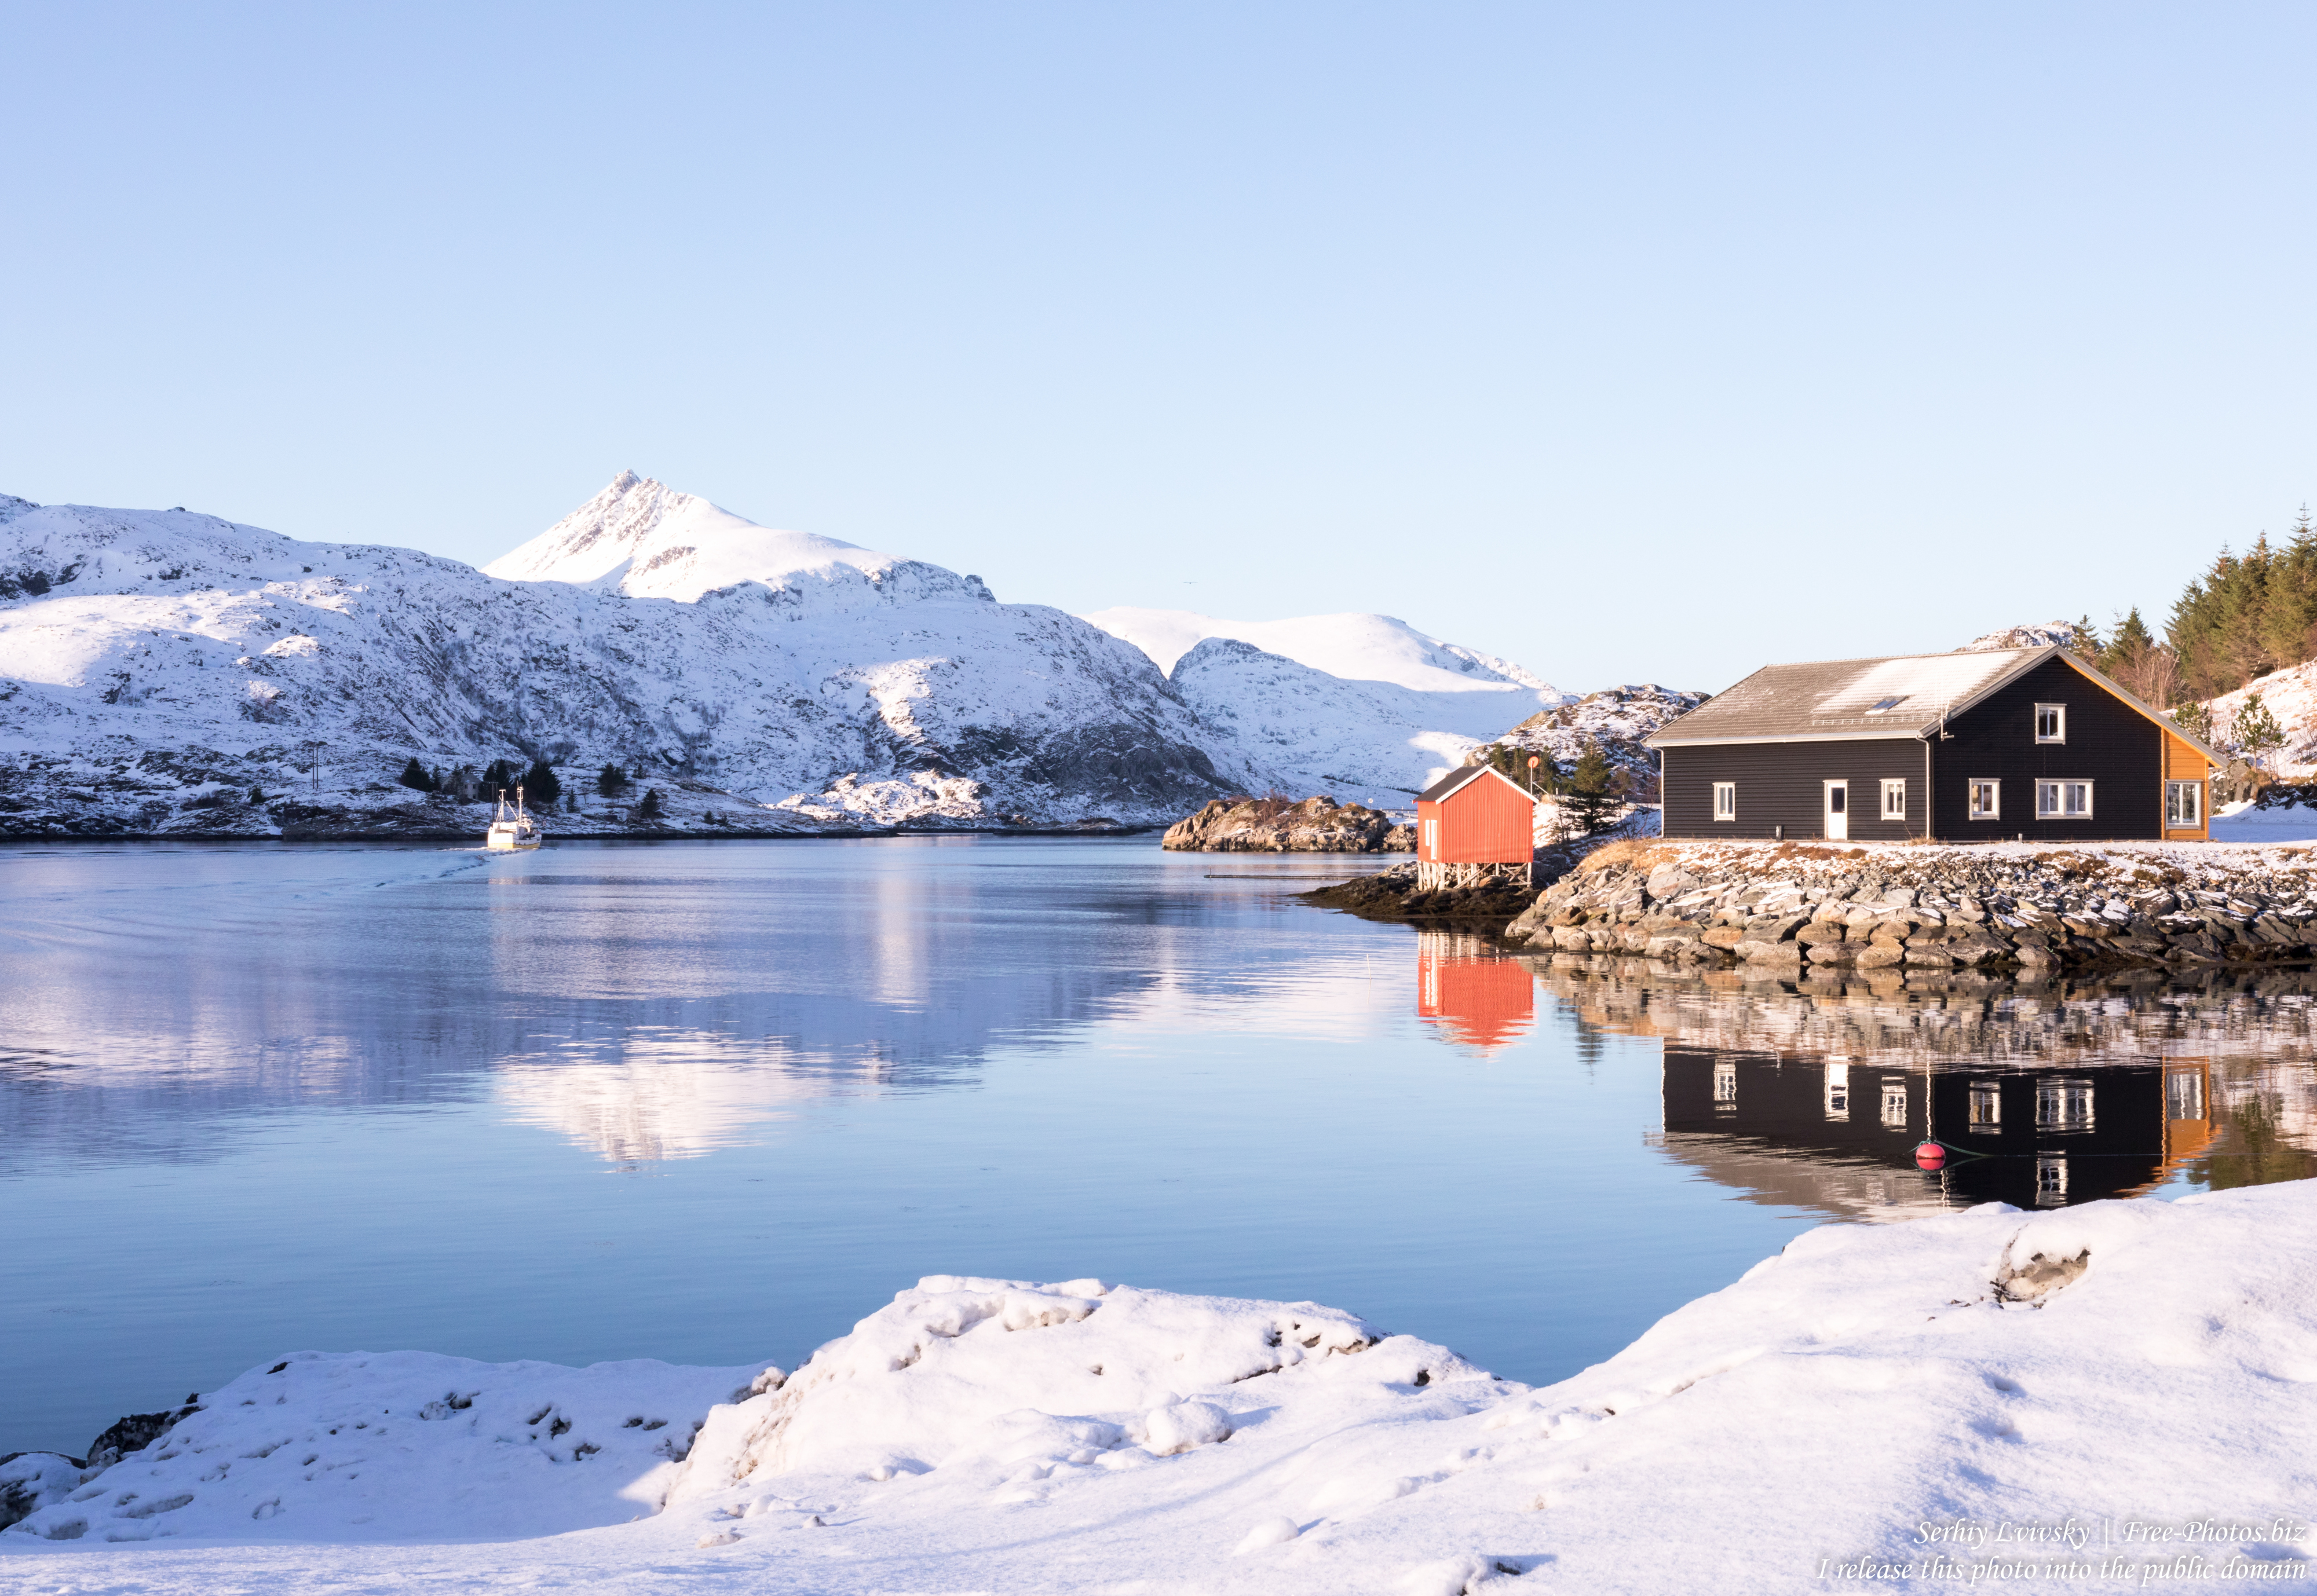 kakern_norway_photographed_in_february_2020_by_serhiy_lvivsky_06